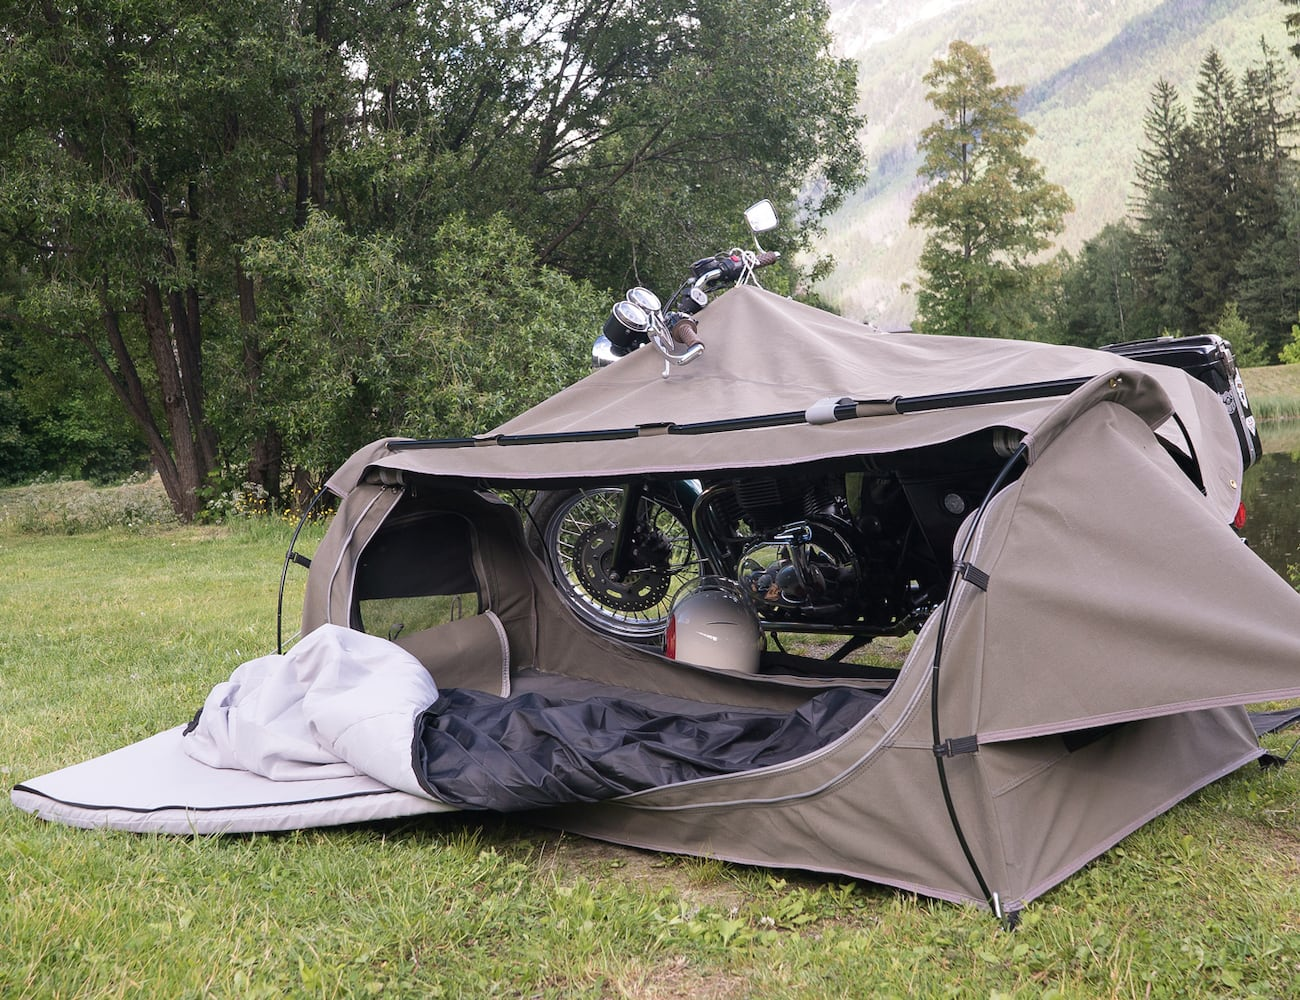 Goose Wingman Of The Road Motorcycle Camping System